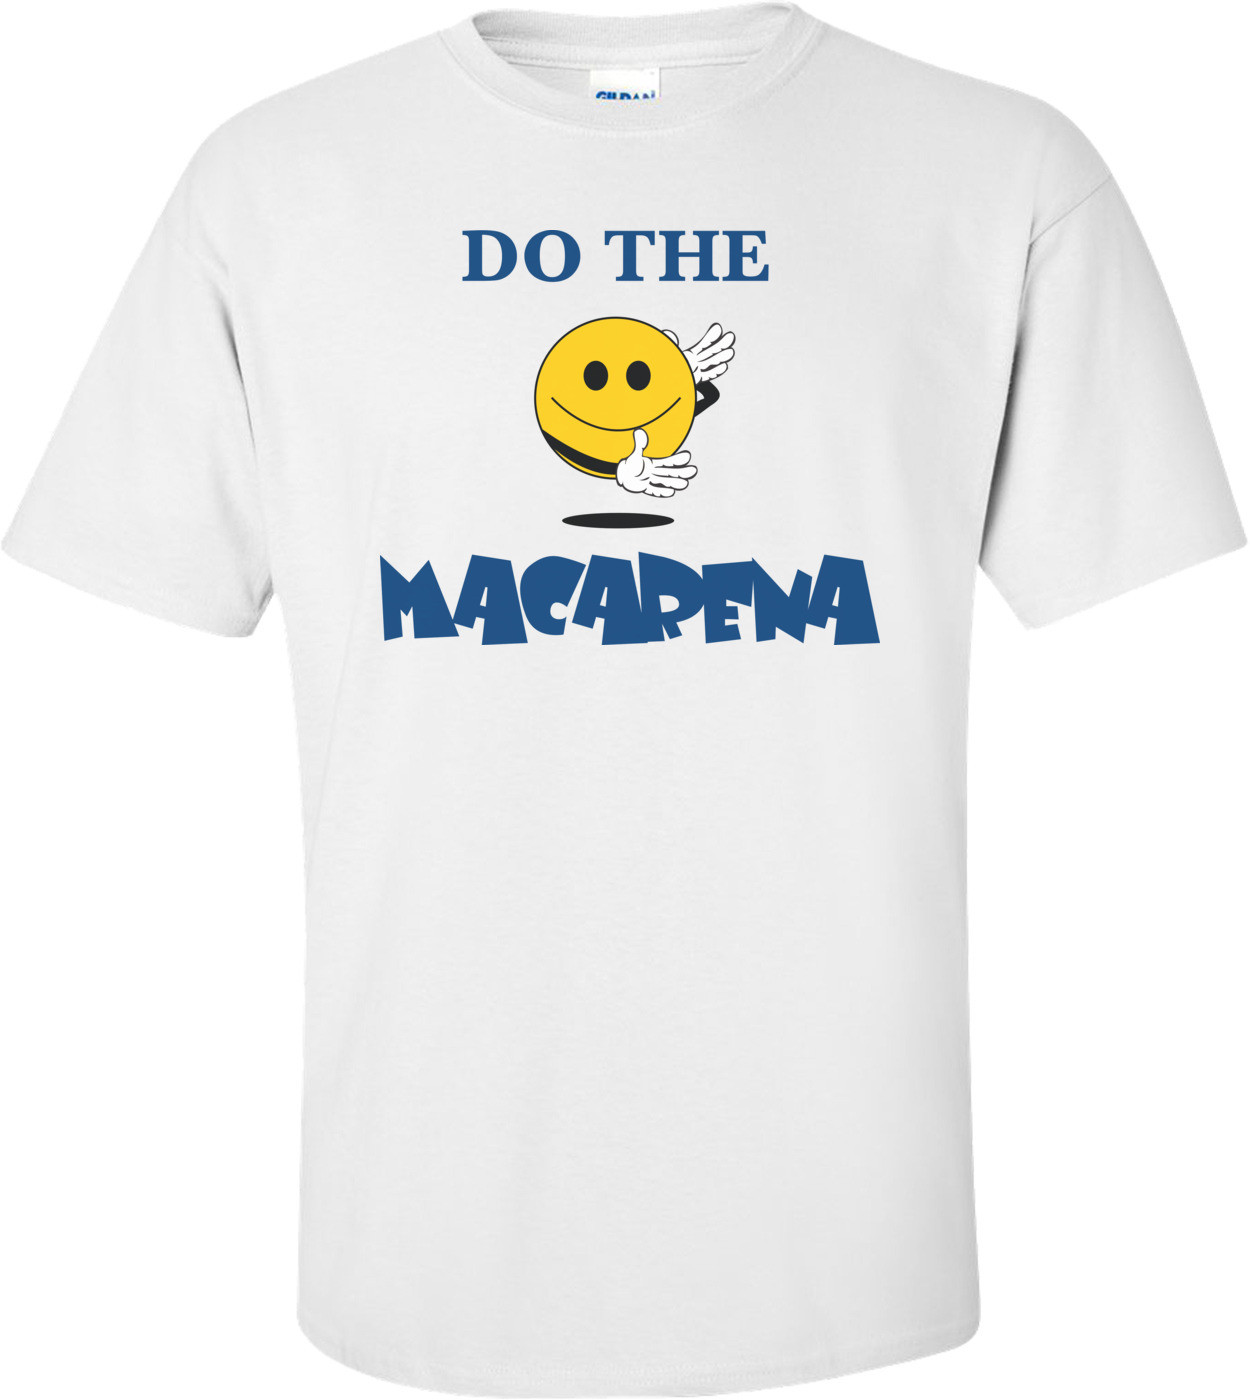 Do The Macarena T-shirt